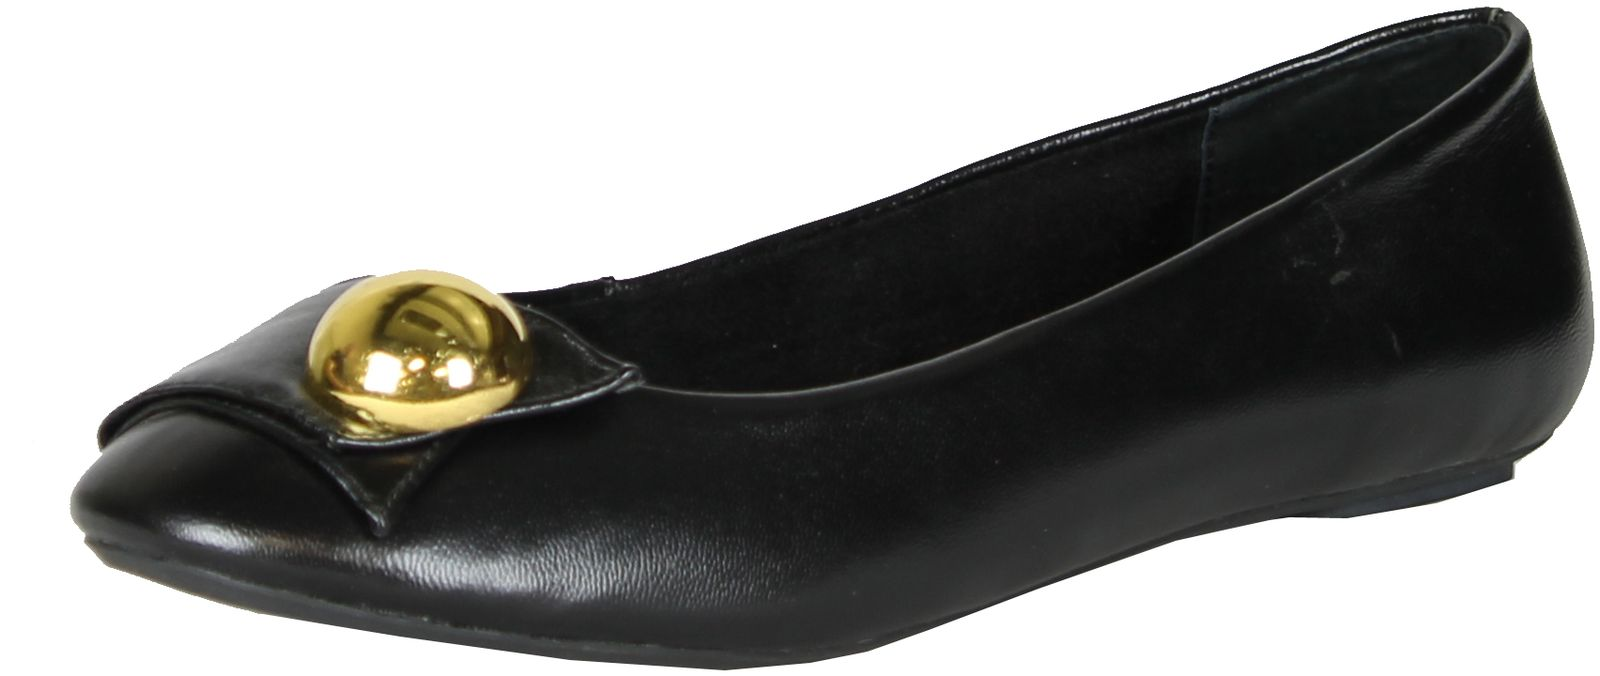 Venettini Girls Susy Ballerinas Flats Shoes